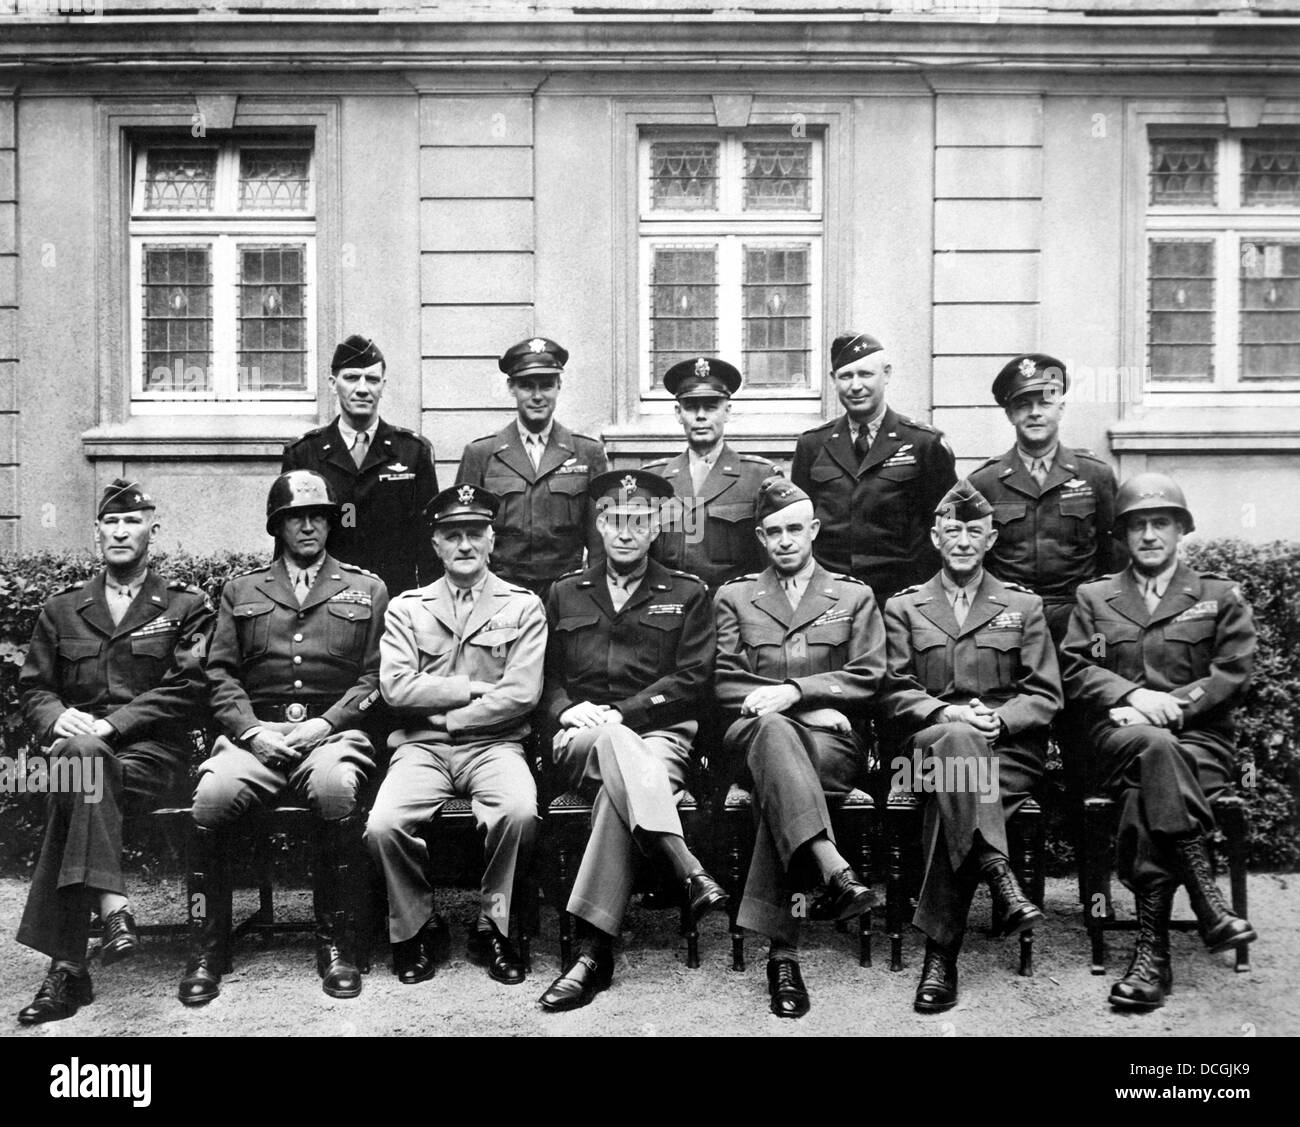 World War II photo of the senior American military commanders of the European Theater. - Stock Image